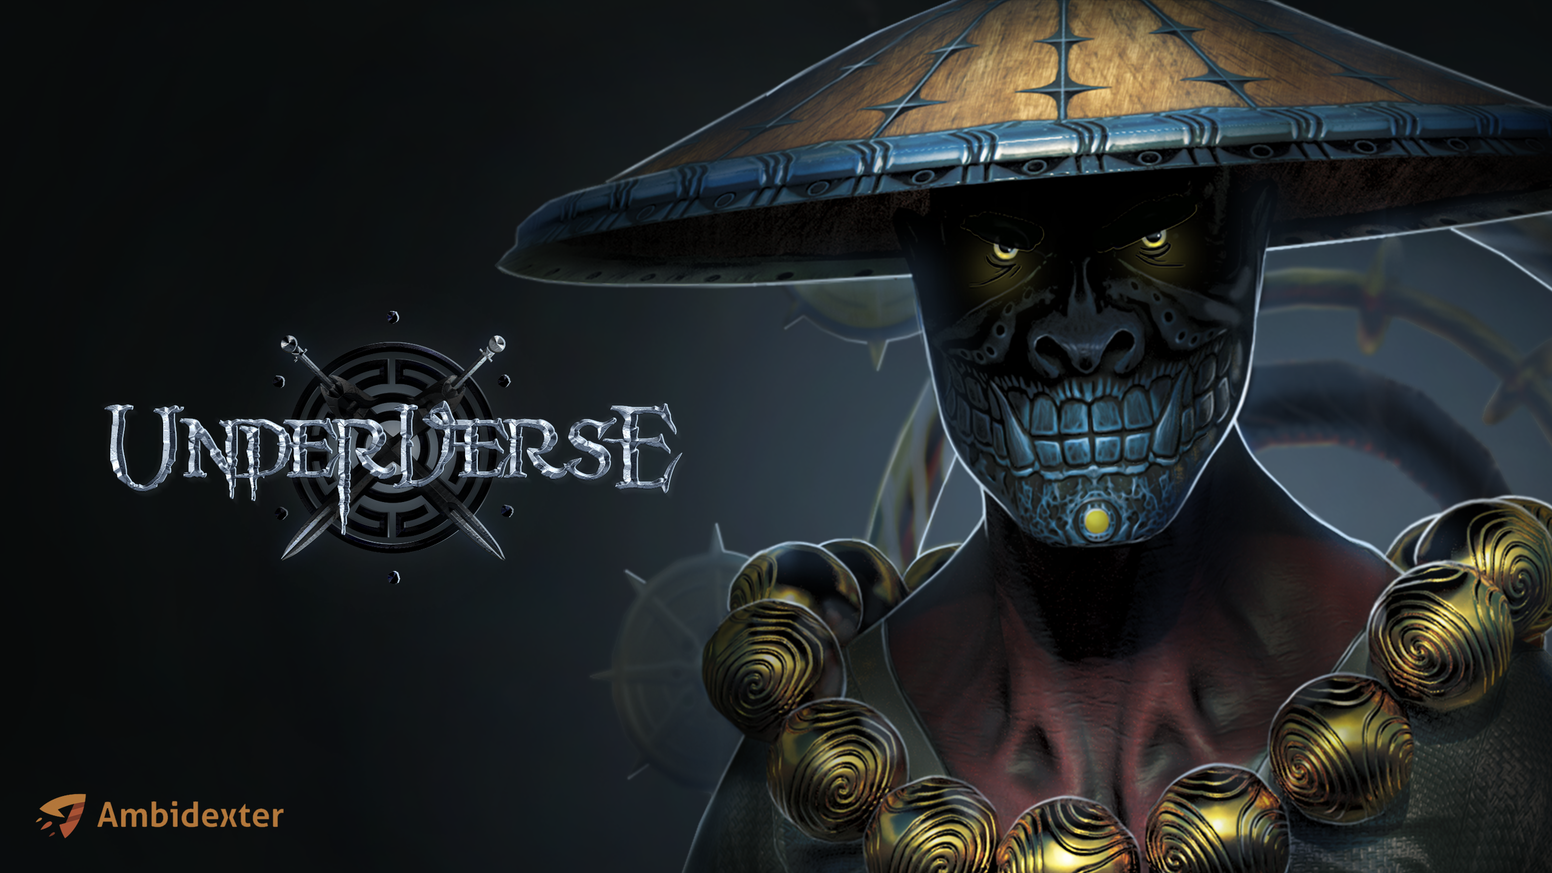 UnderVerse AR RPG is a new generation mobile RPG, focused on augmented reality and geopositioning.